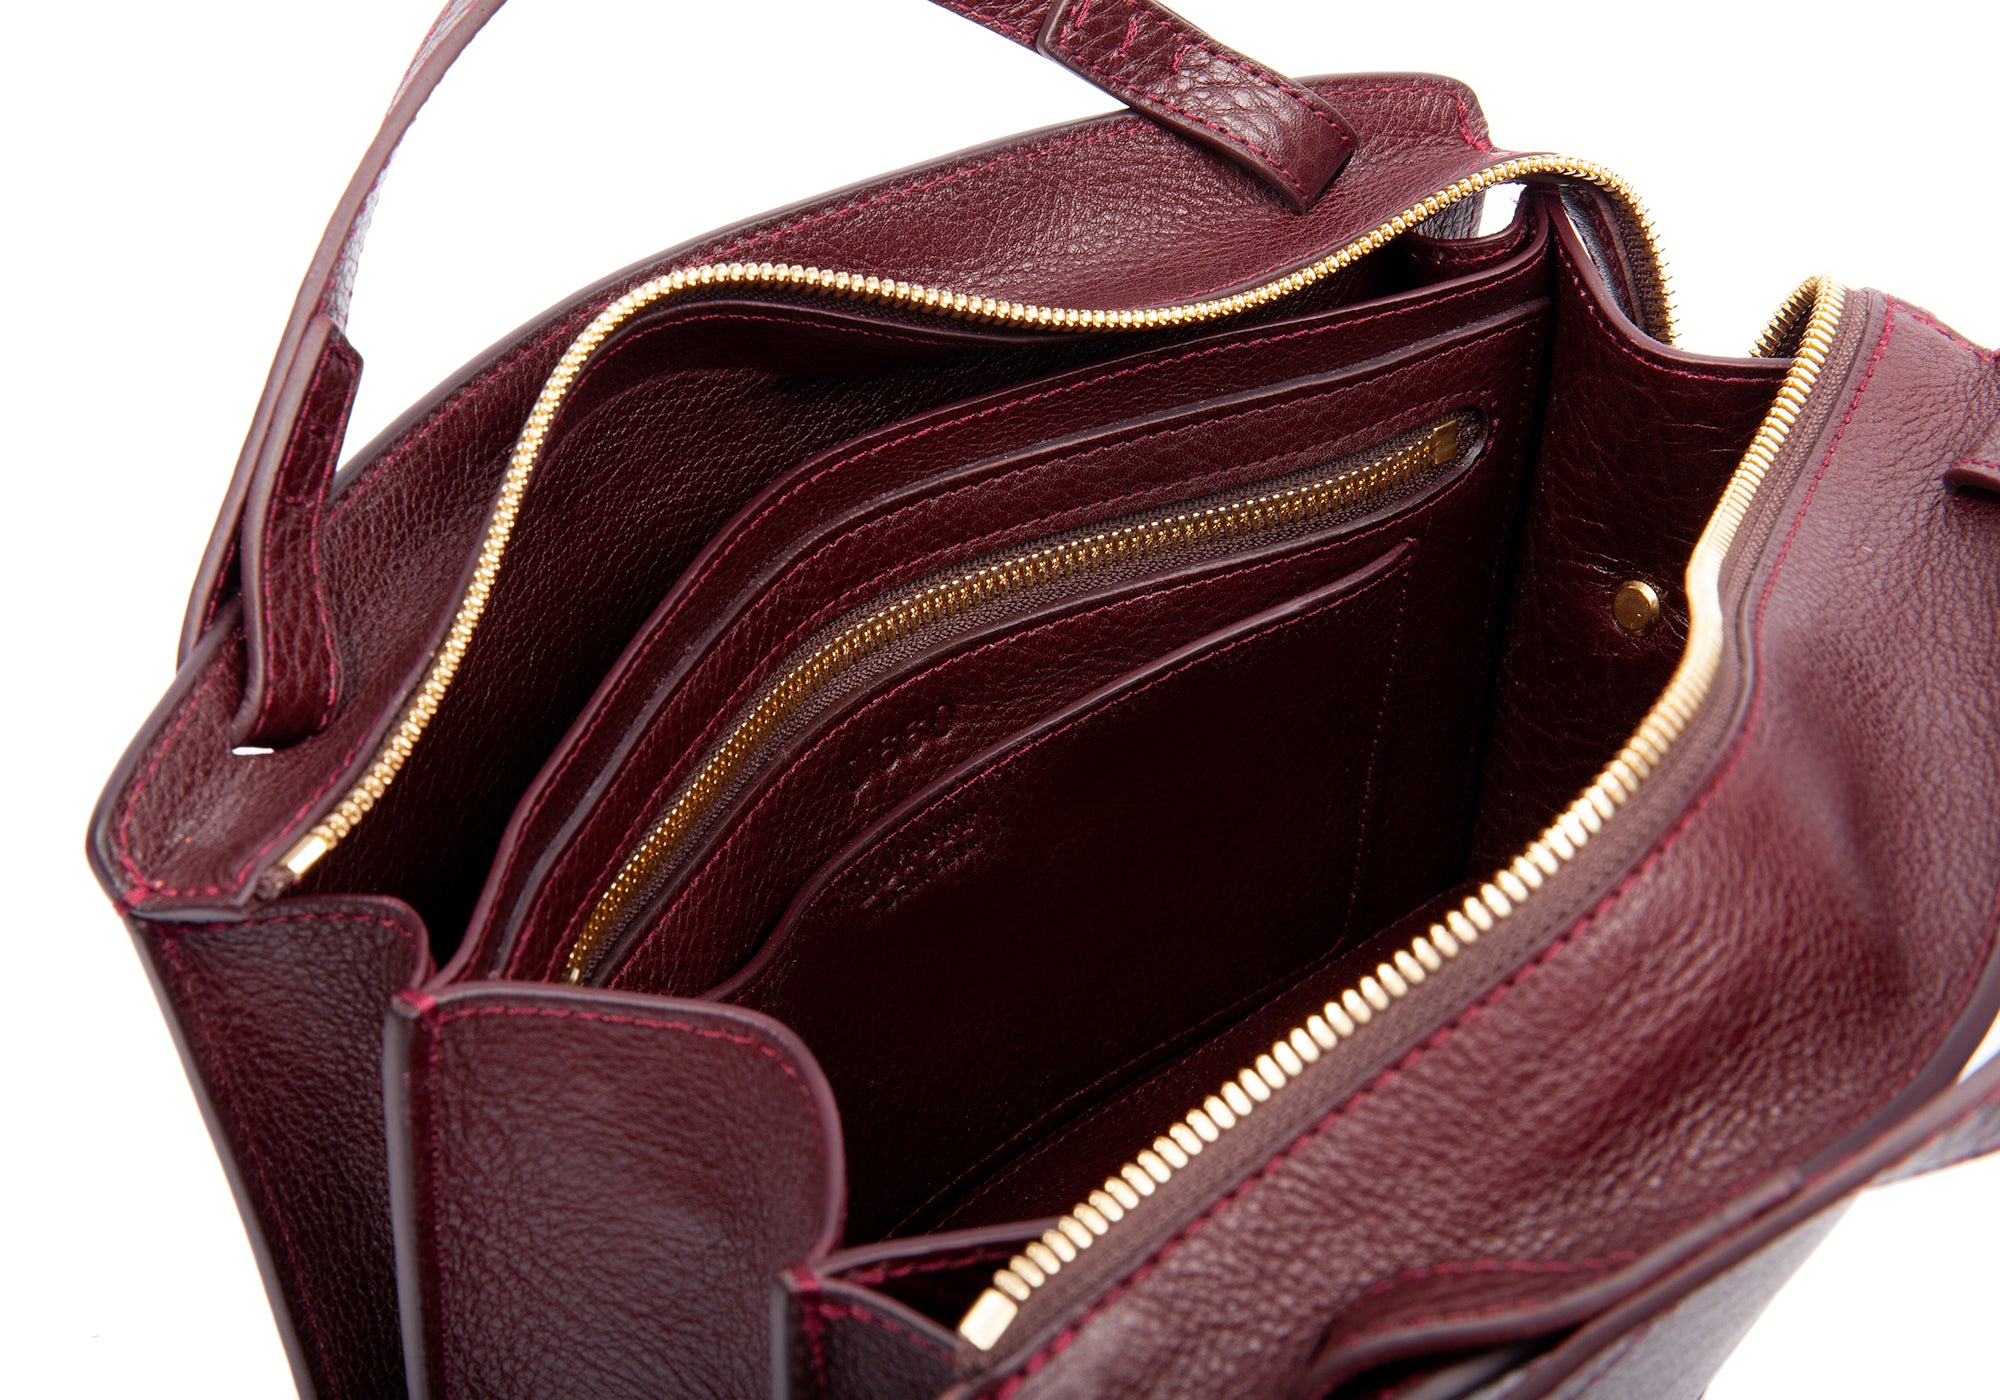 The Sol Handbag Cordovan